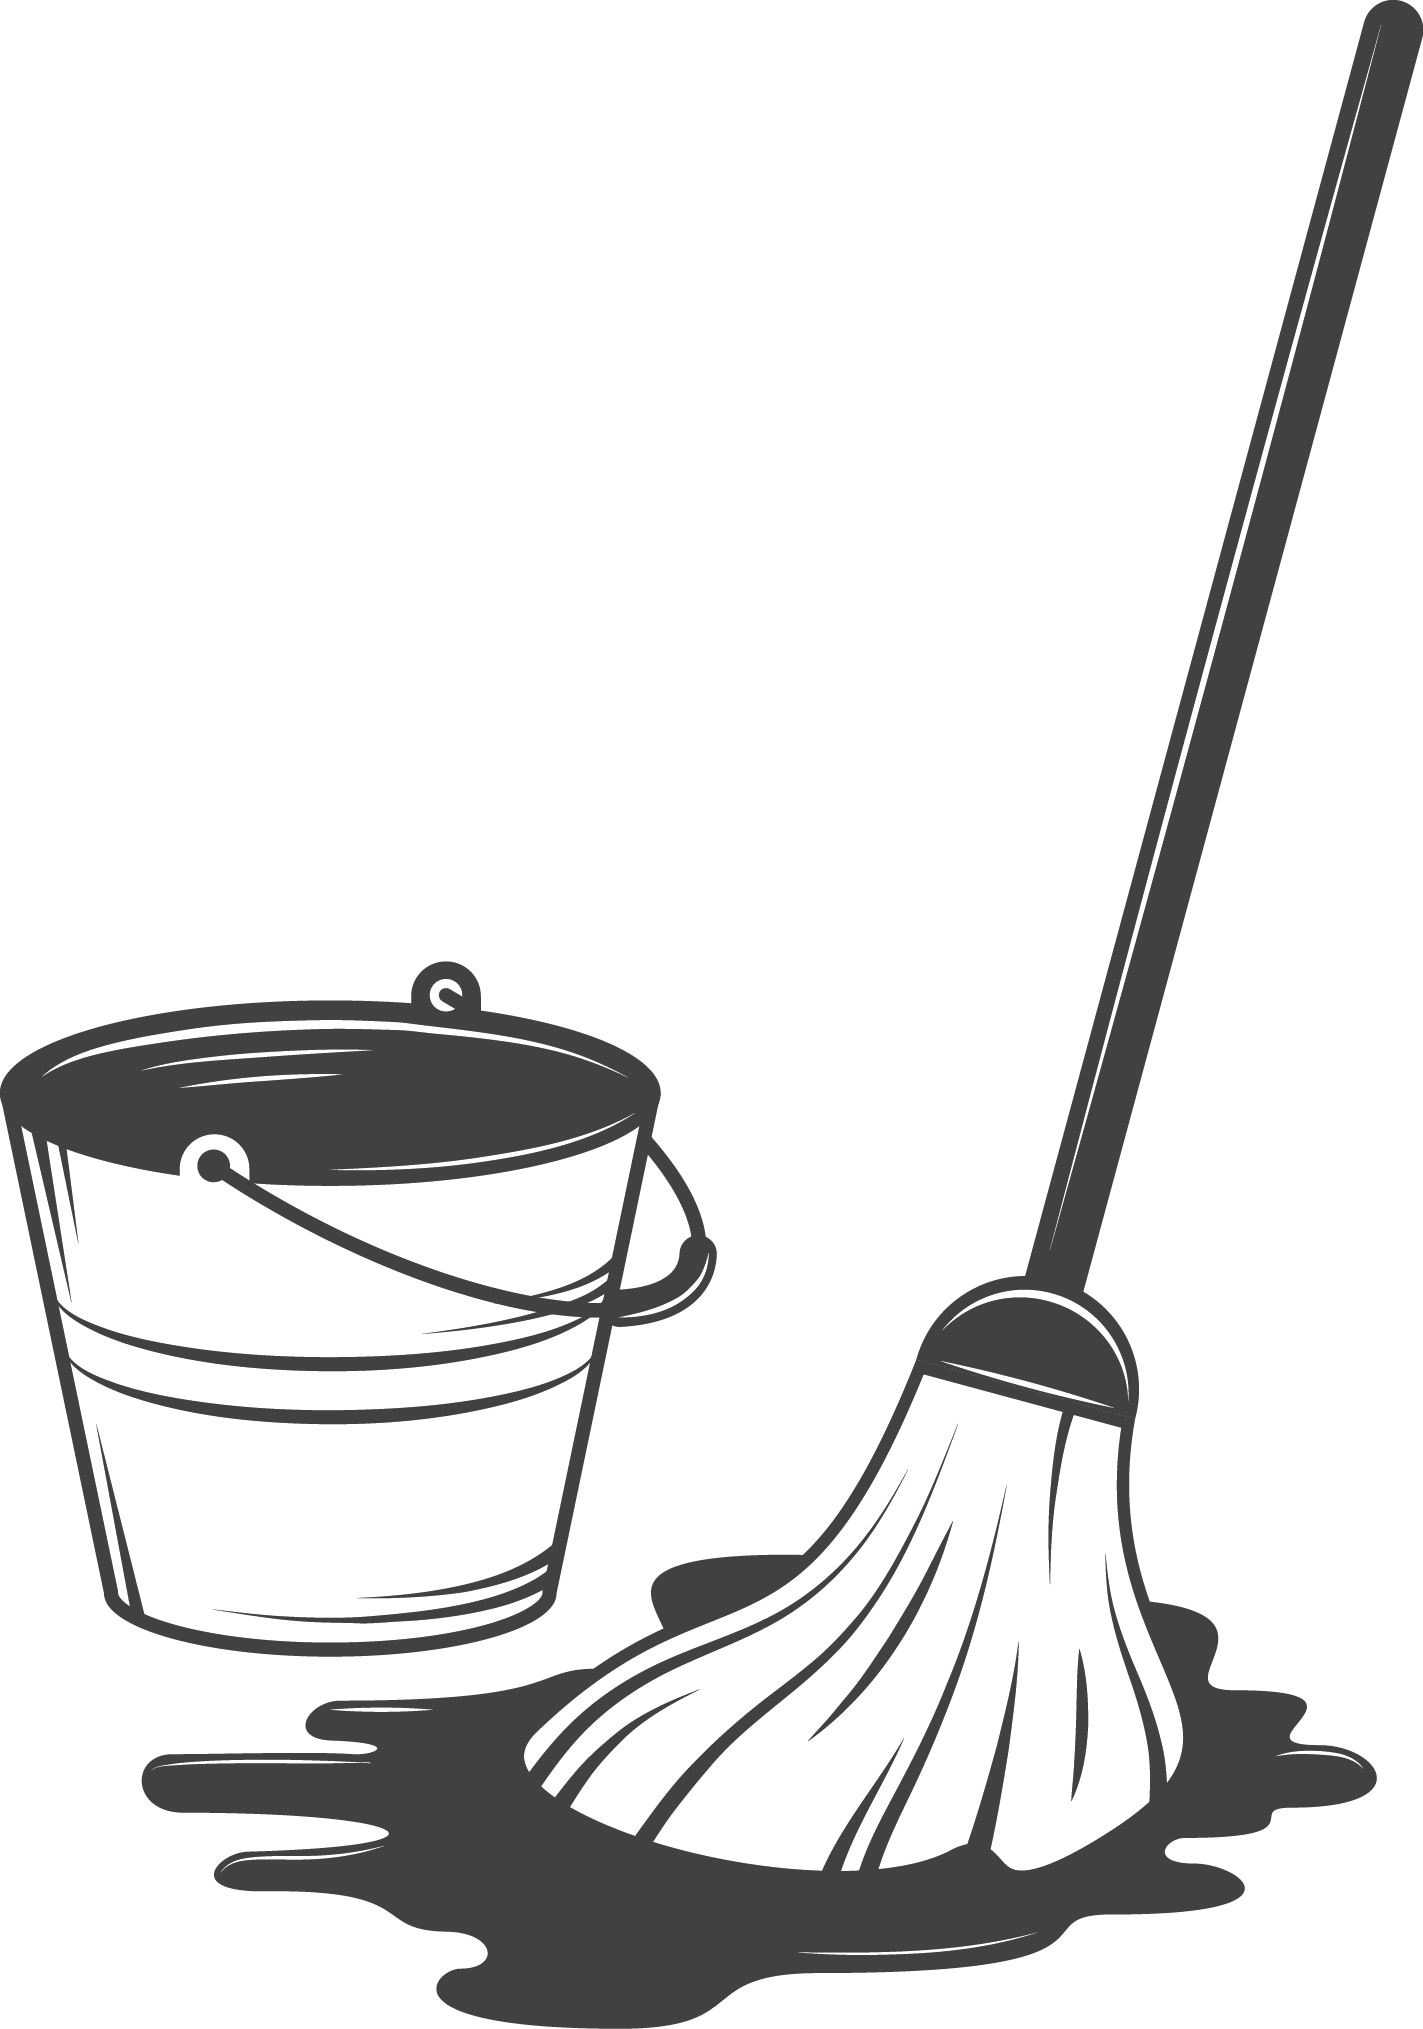 Mop clipart housekeeping supply. Cleaning tool illustration and